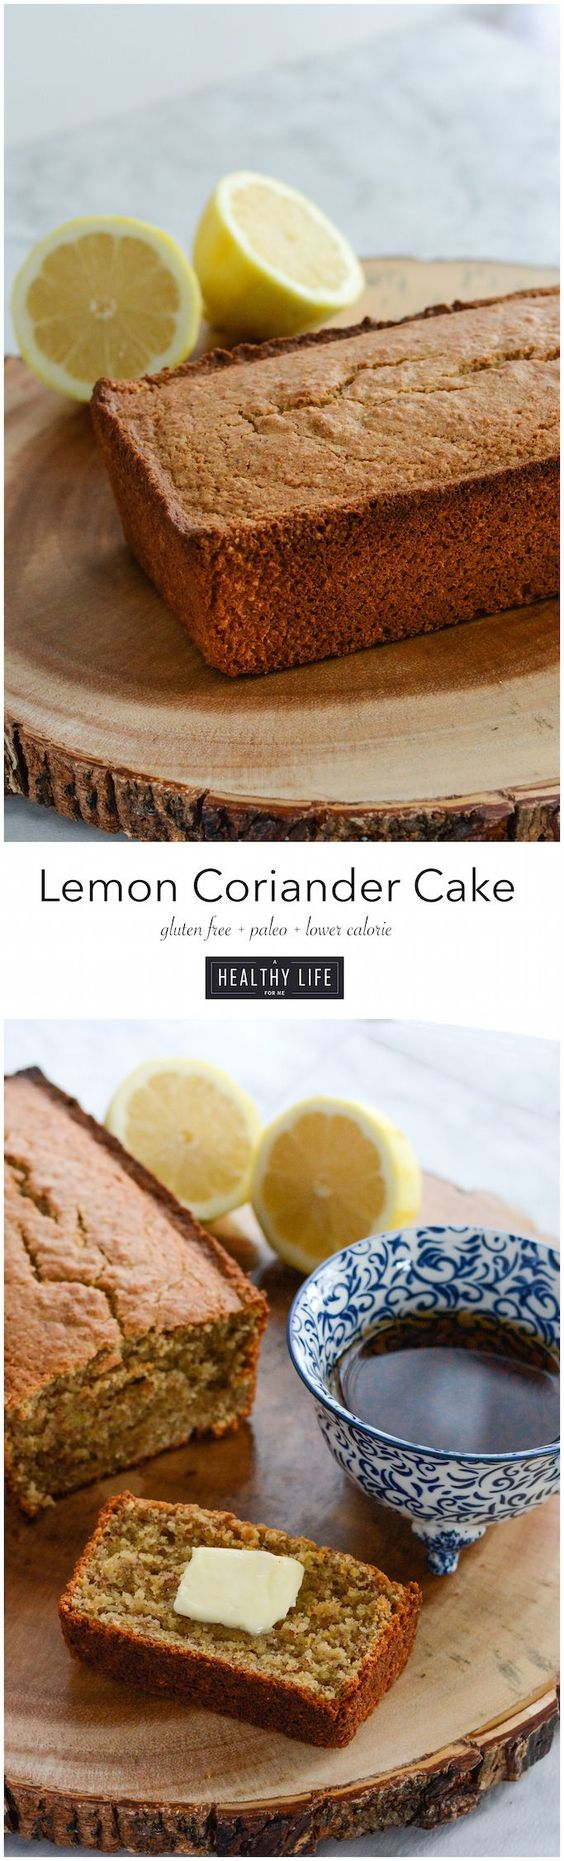 Lemon Coriander Cake is a delightful, not to sweet cake that has a surprising flavor of coriander with the brightness of lemon. Made with almond, tapioca, and coconut flour and sweetened with maple syrup. A low calorie, dense, gluten free, and paleo friendly cake recipe. - A Healthy Life For Me